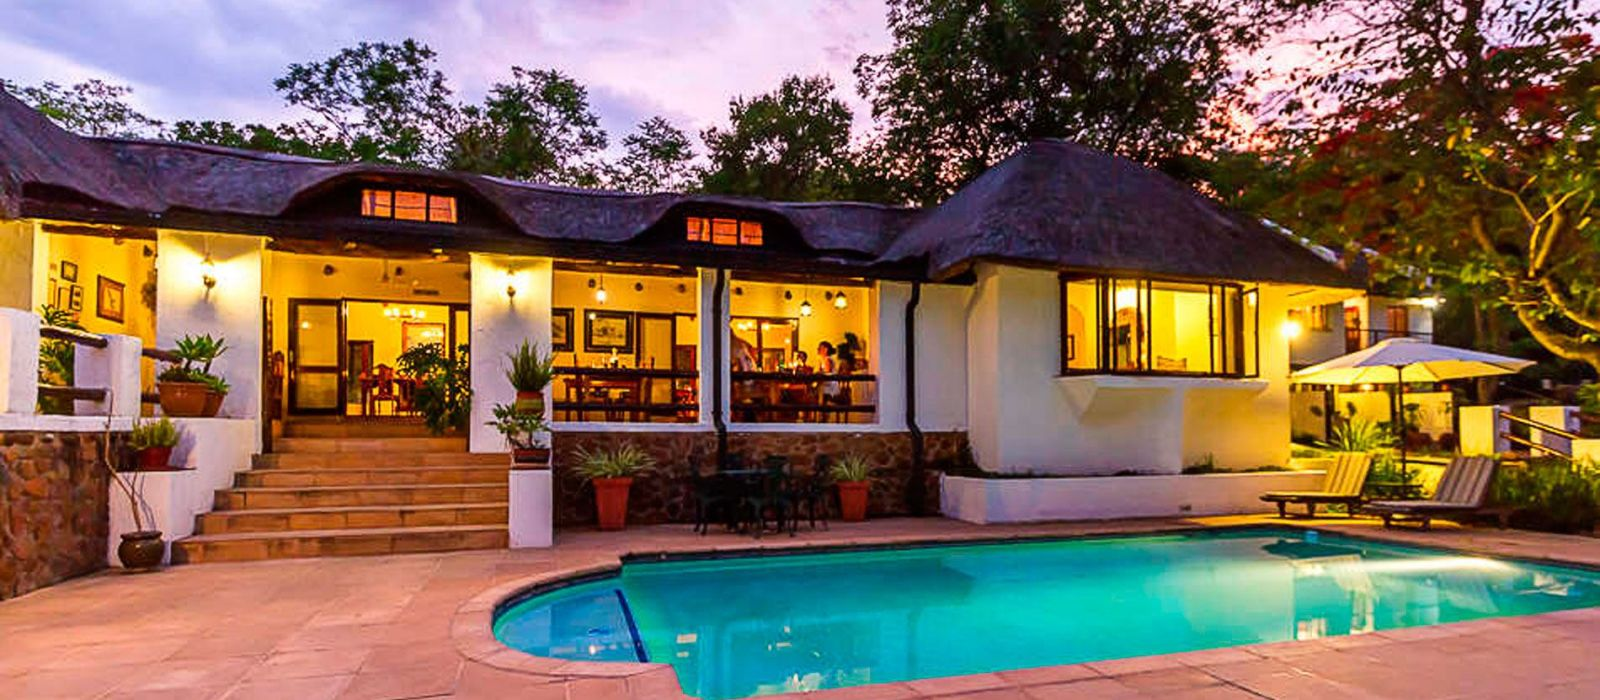 Hotel Rissington Inn South Africa